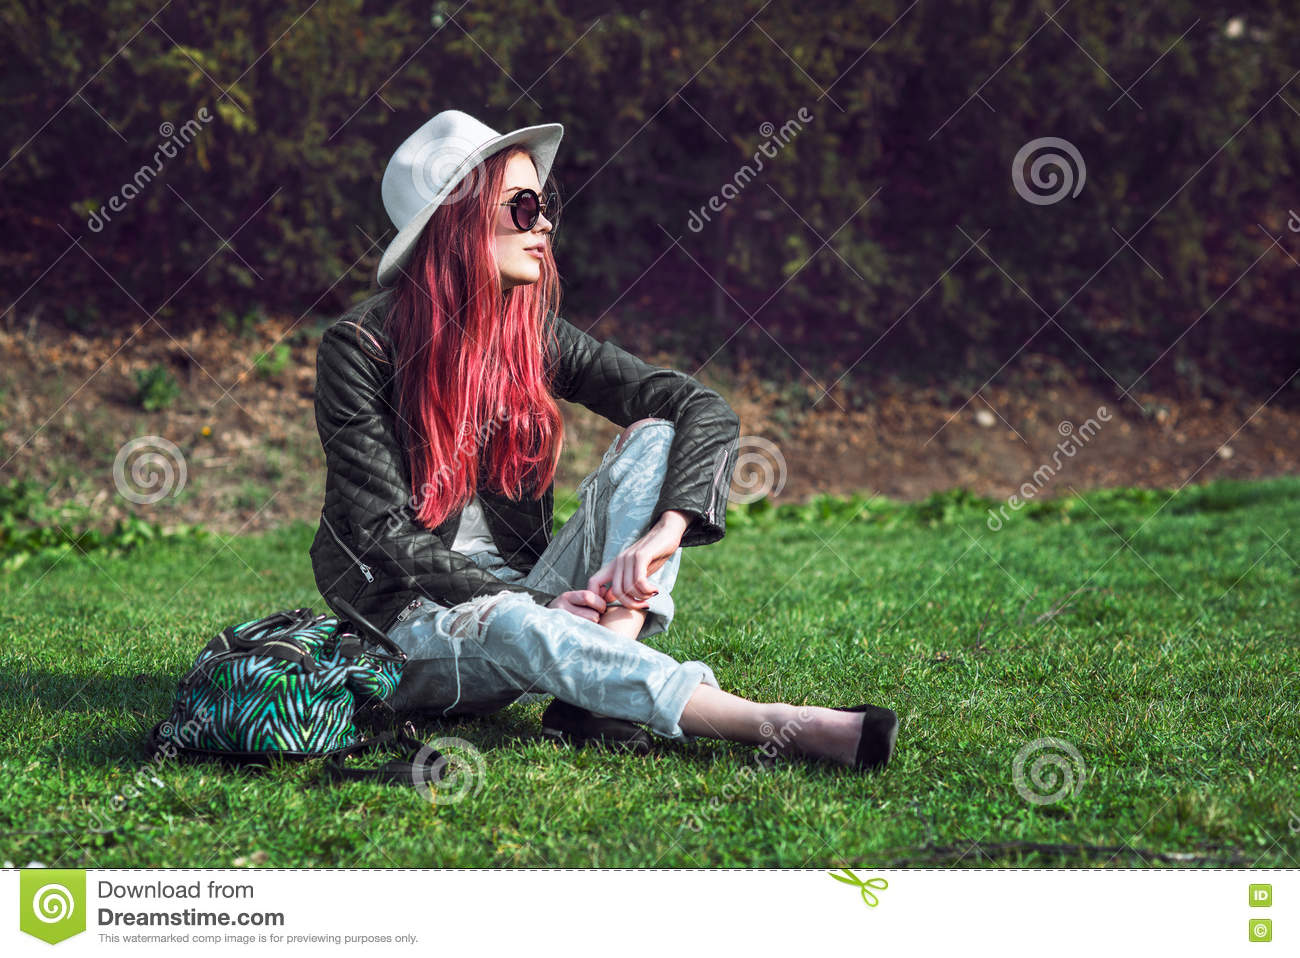 Beautiful stylish red haired fashion hipster model woman sitting outdoors on green grass at park wearing sunglasses, hat and black